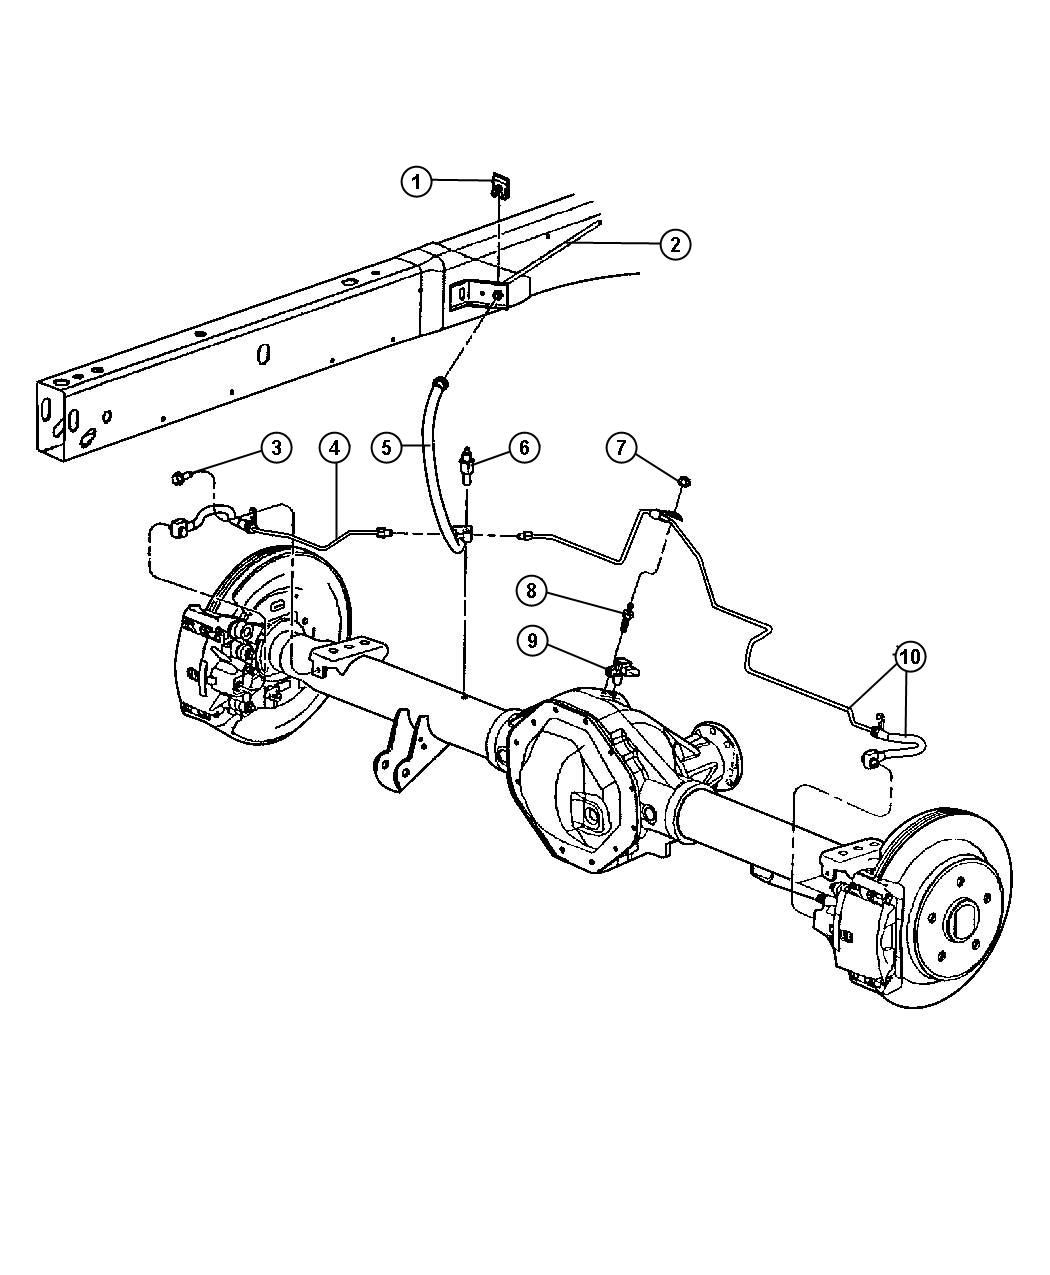 2003 dodge ram wheel diagram